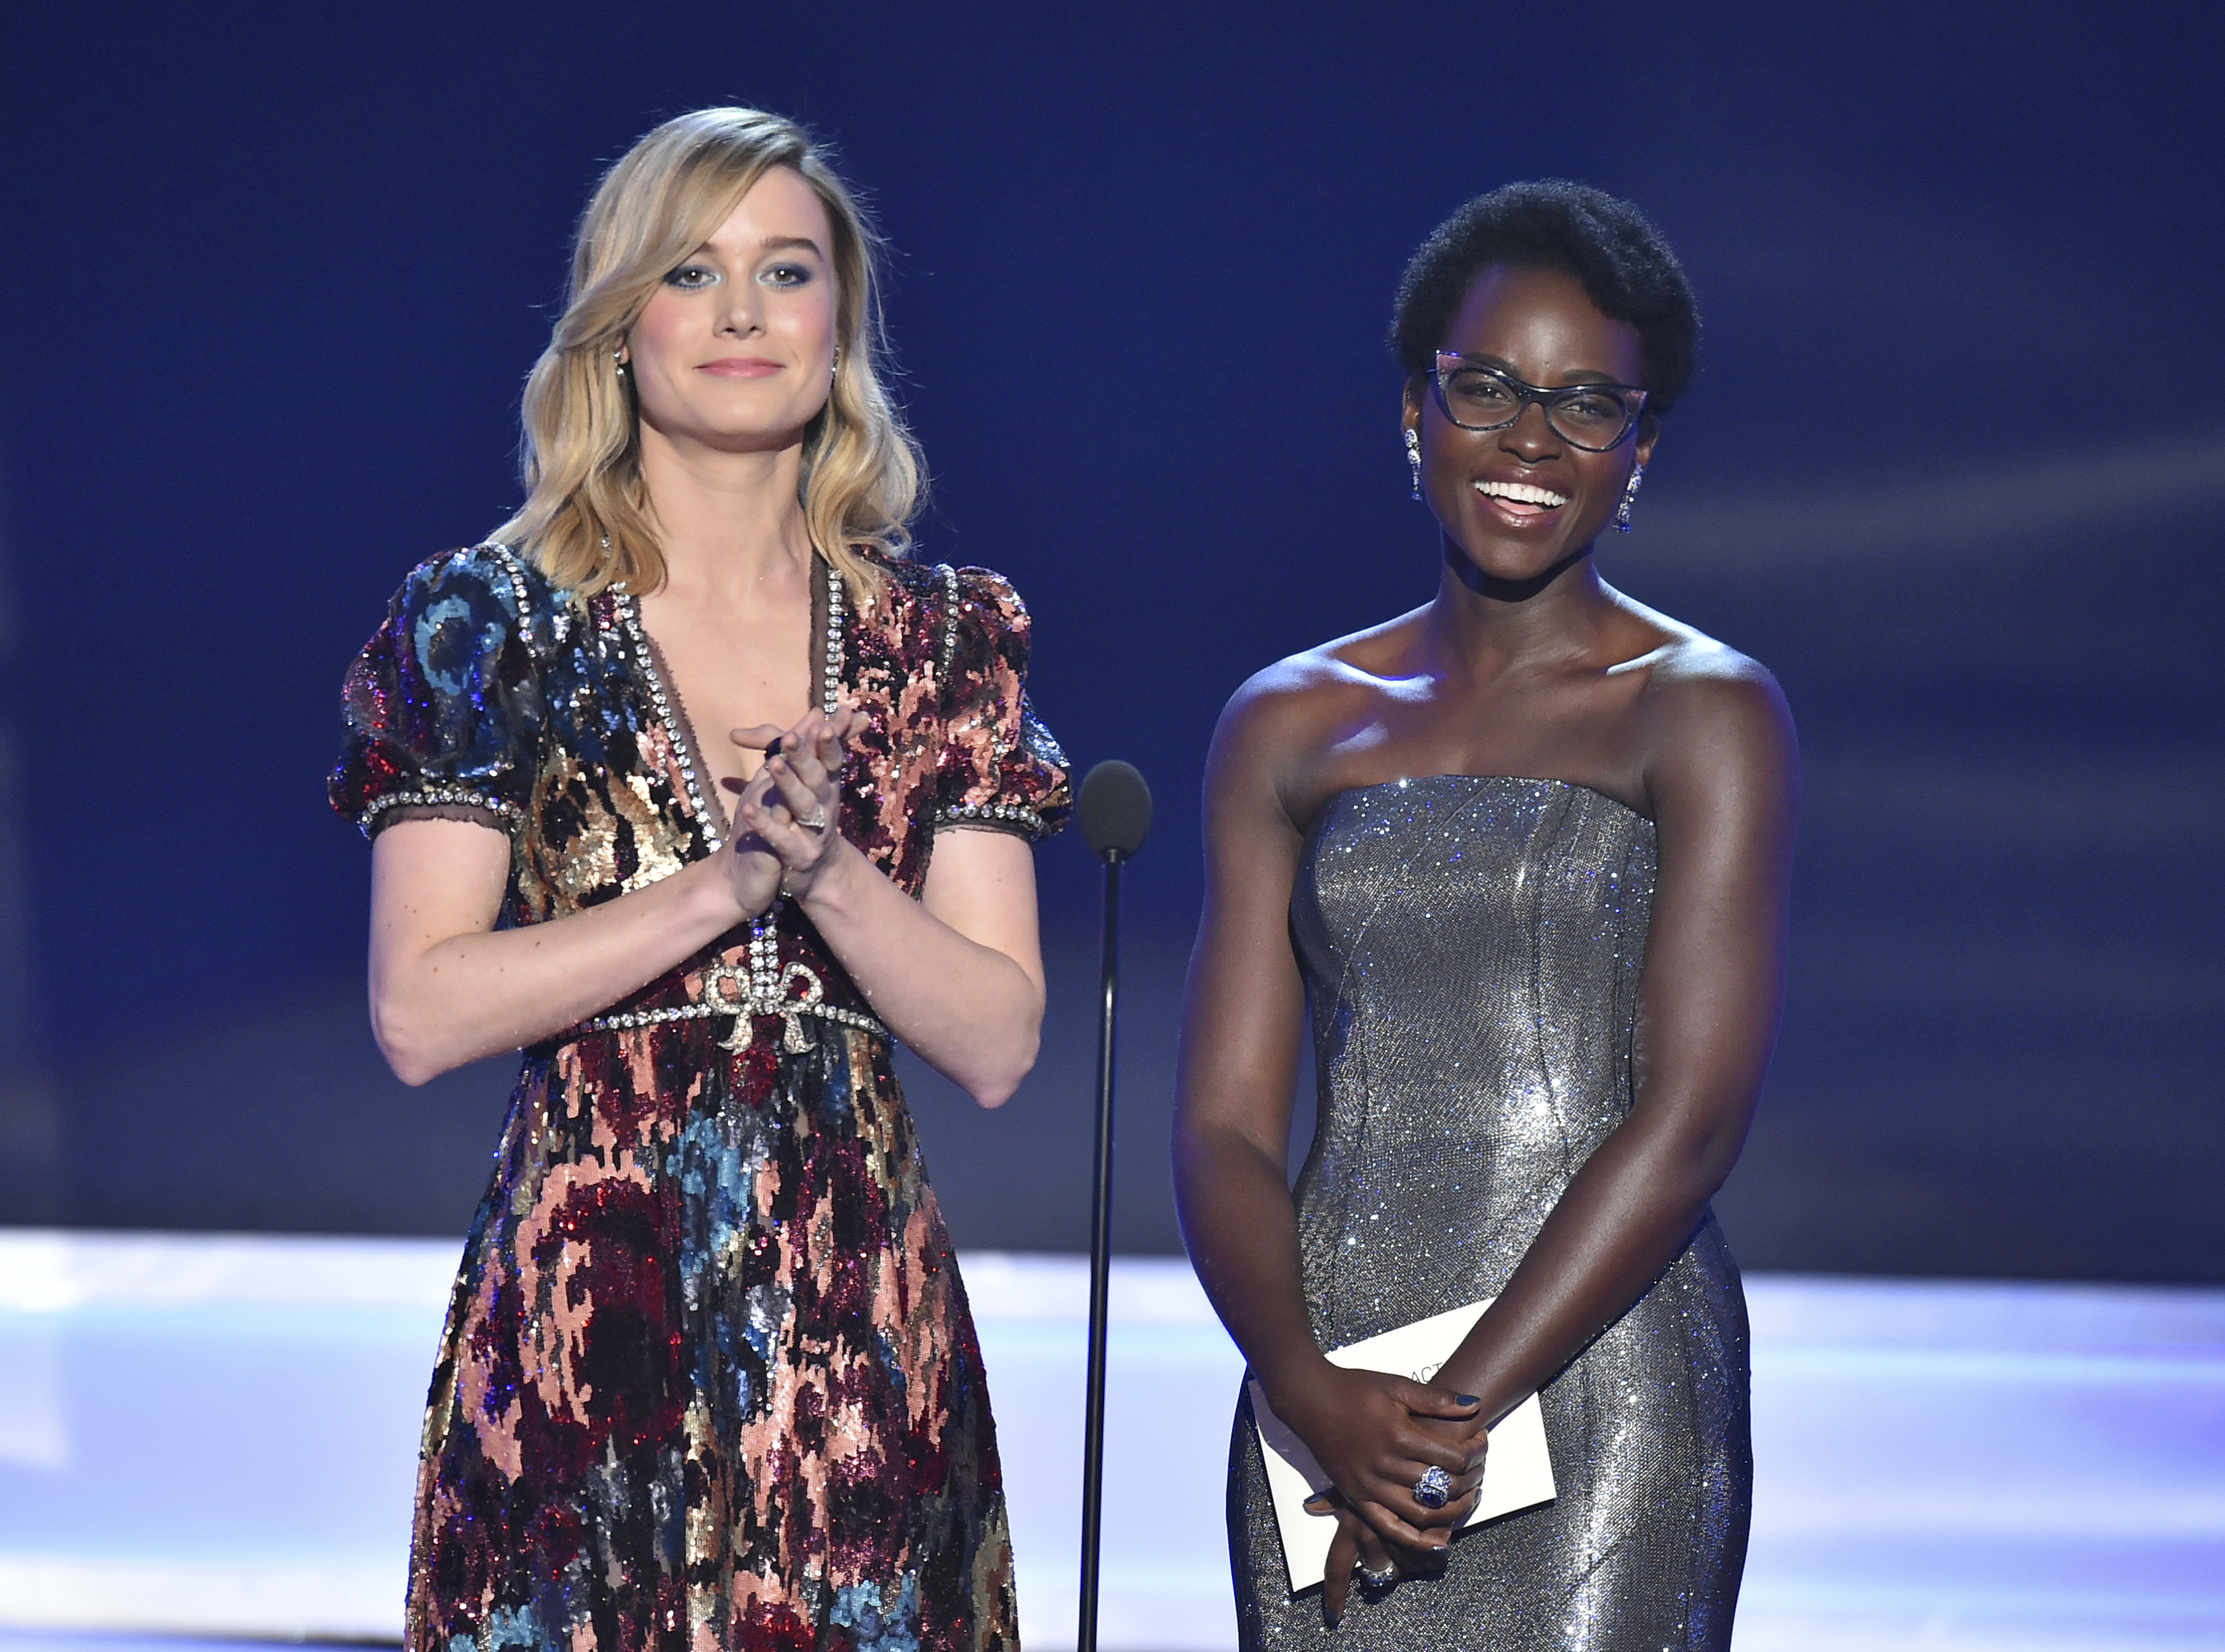 Brie Larson, left, and Lupita Nyong'o present the award for outstanding performance by a cast in a motion picture at the 24th annual Screen Actors Guild Awards at the Shrine Auditorium Expo Hall on Sunday, Jan. 21, 2018